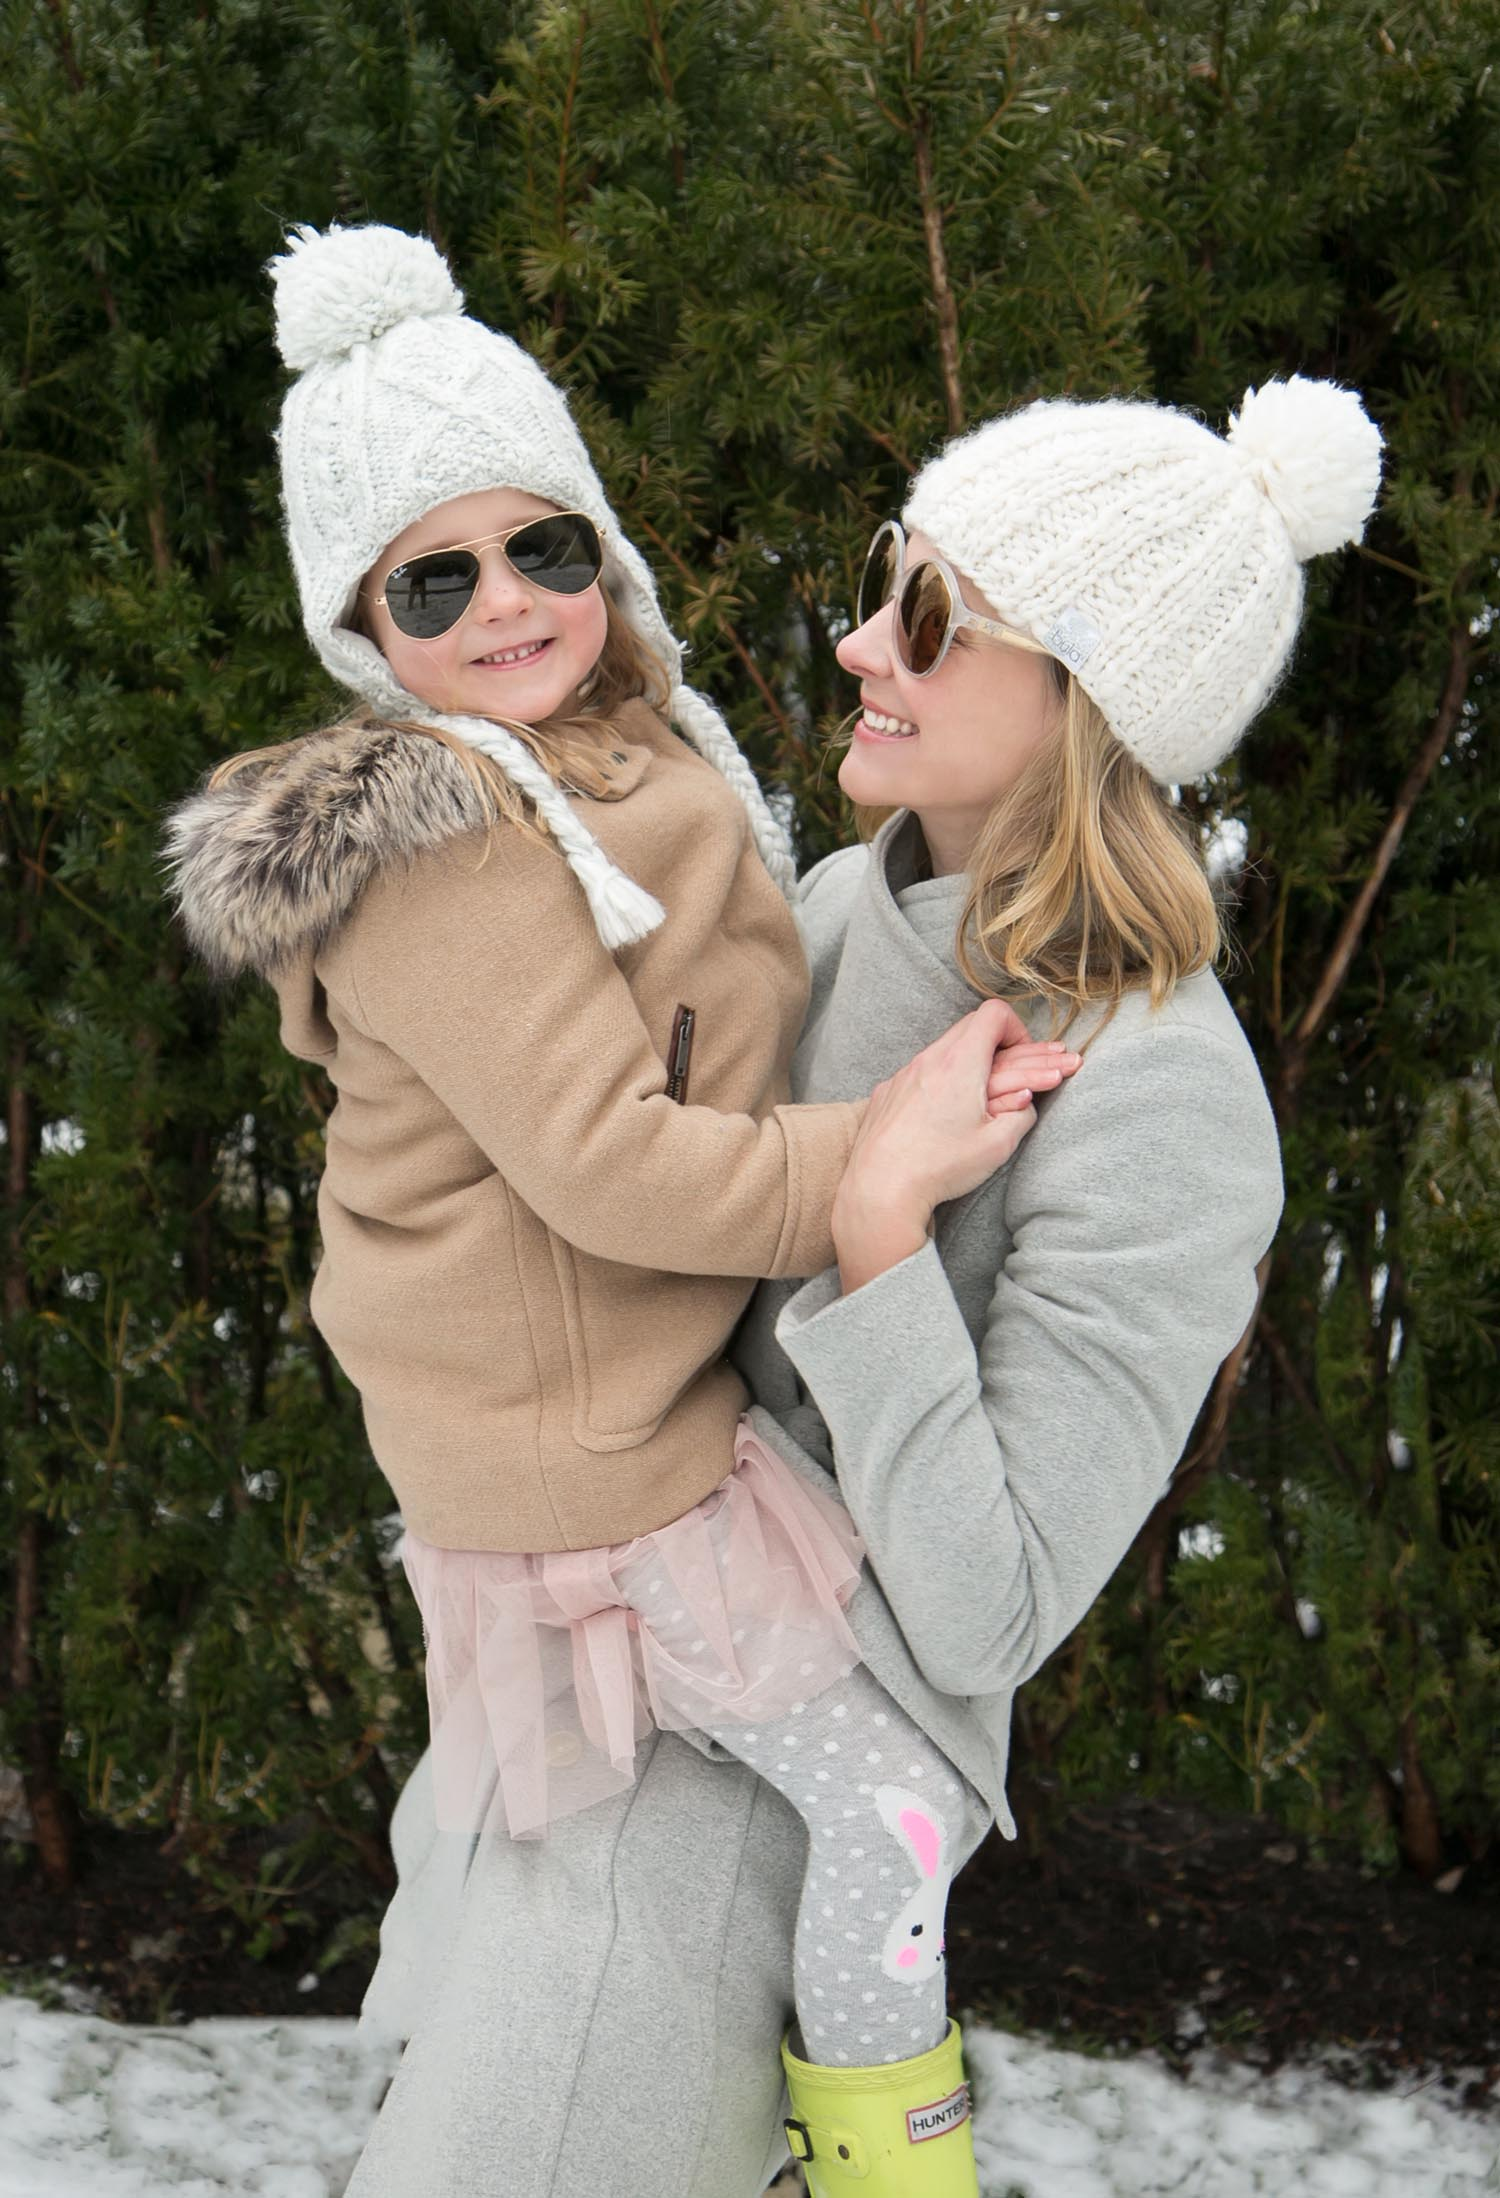 Mama and daughter with sunglasses